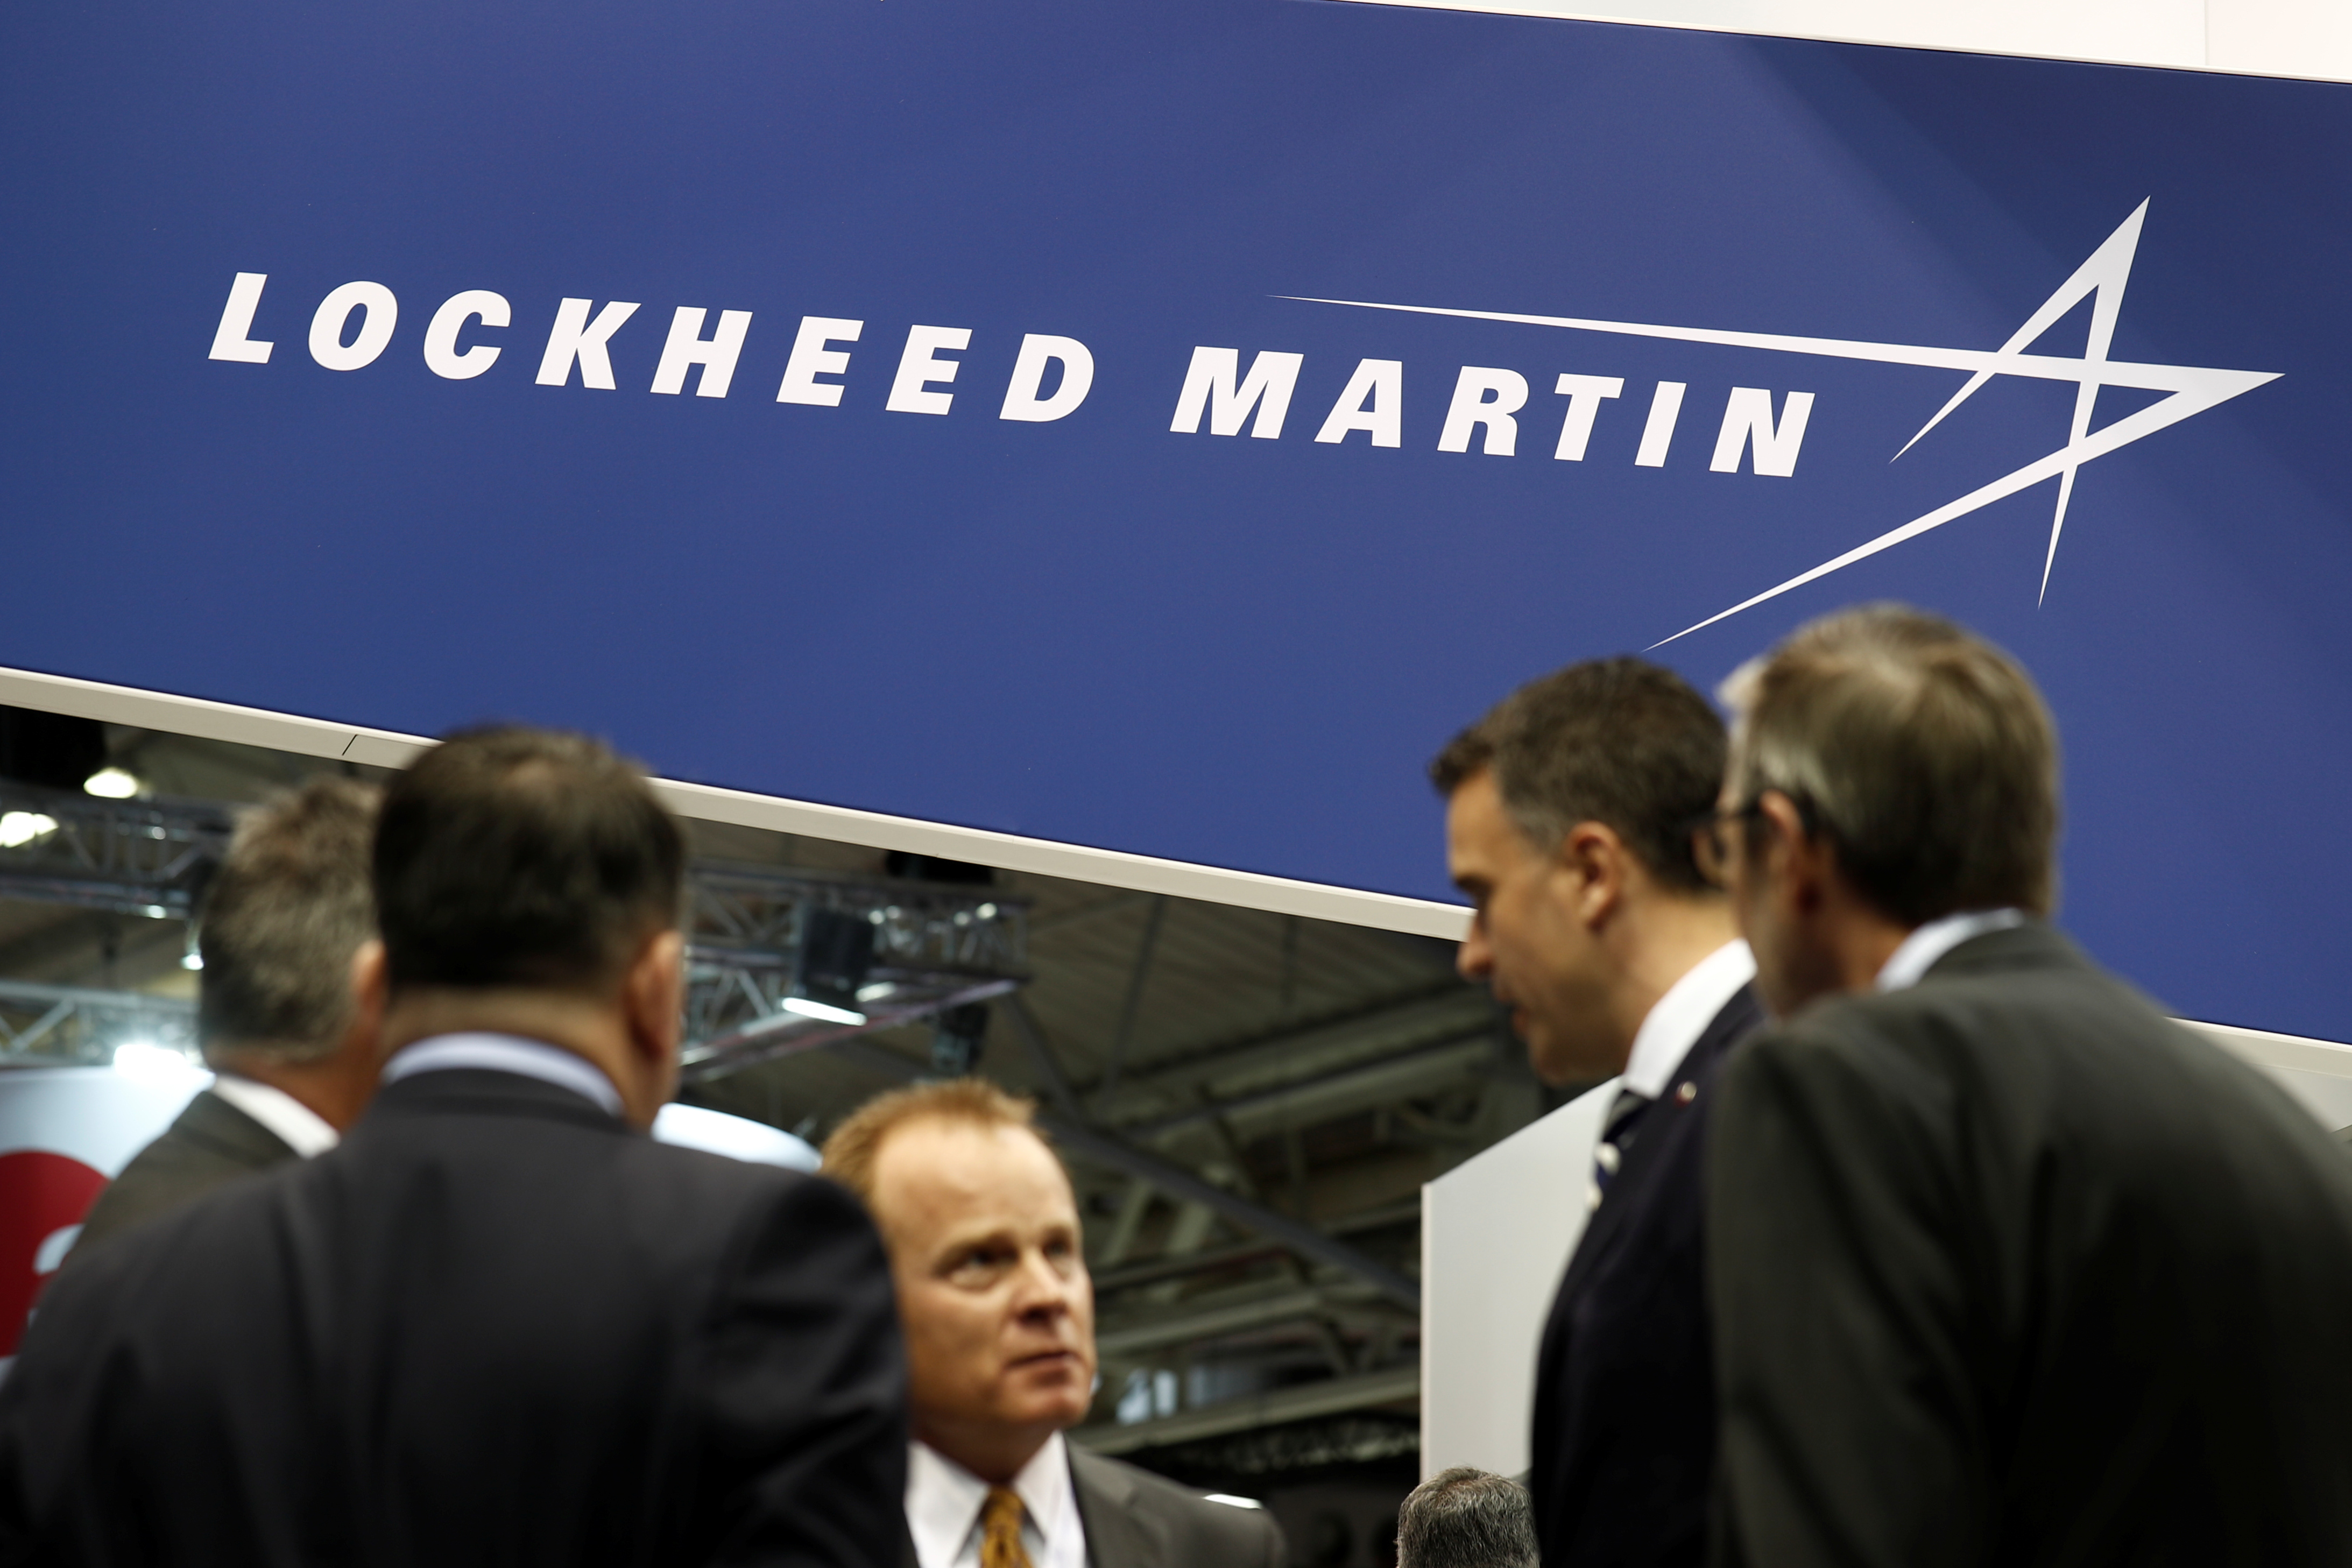 The logo of Lockheed Martin is seen at Euronaval, the world naval defence exhibition in Le Bourget near Paris, France, October 23, 2018. REUTERS/Benoit Tessier